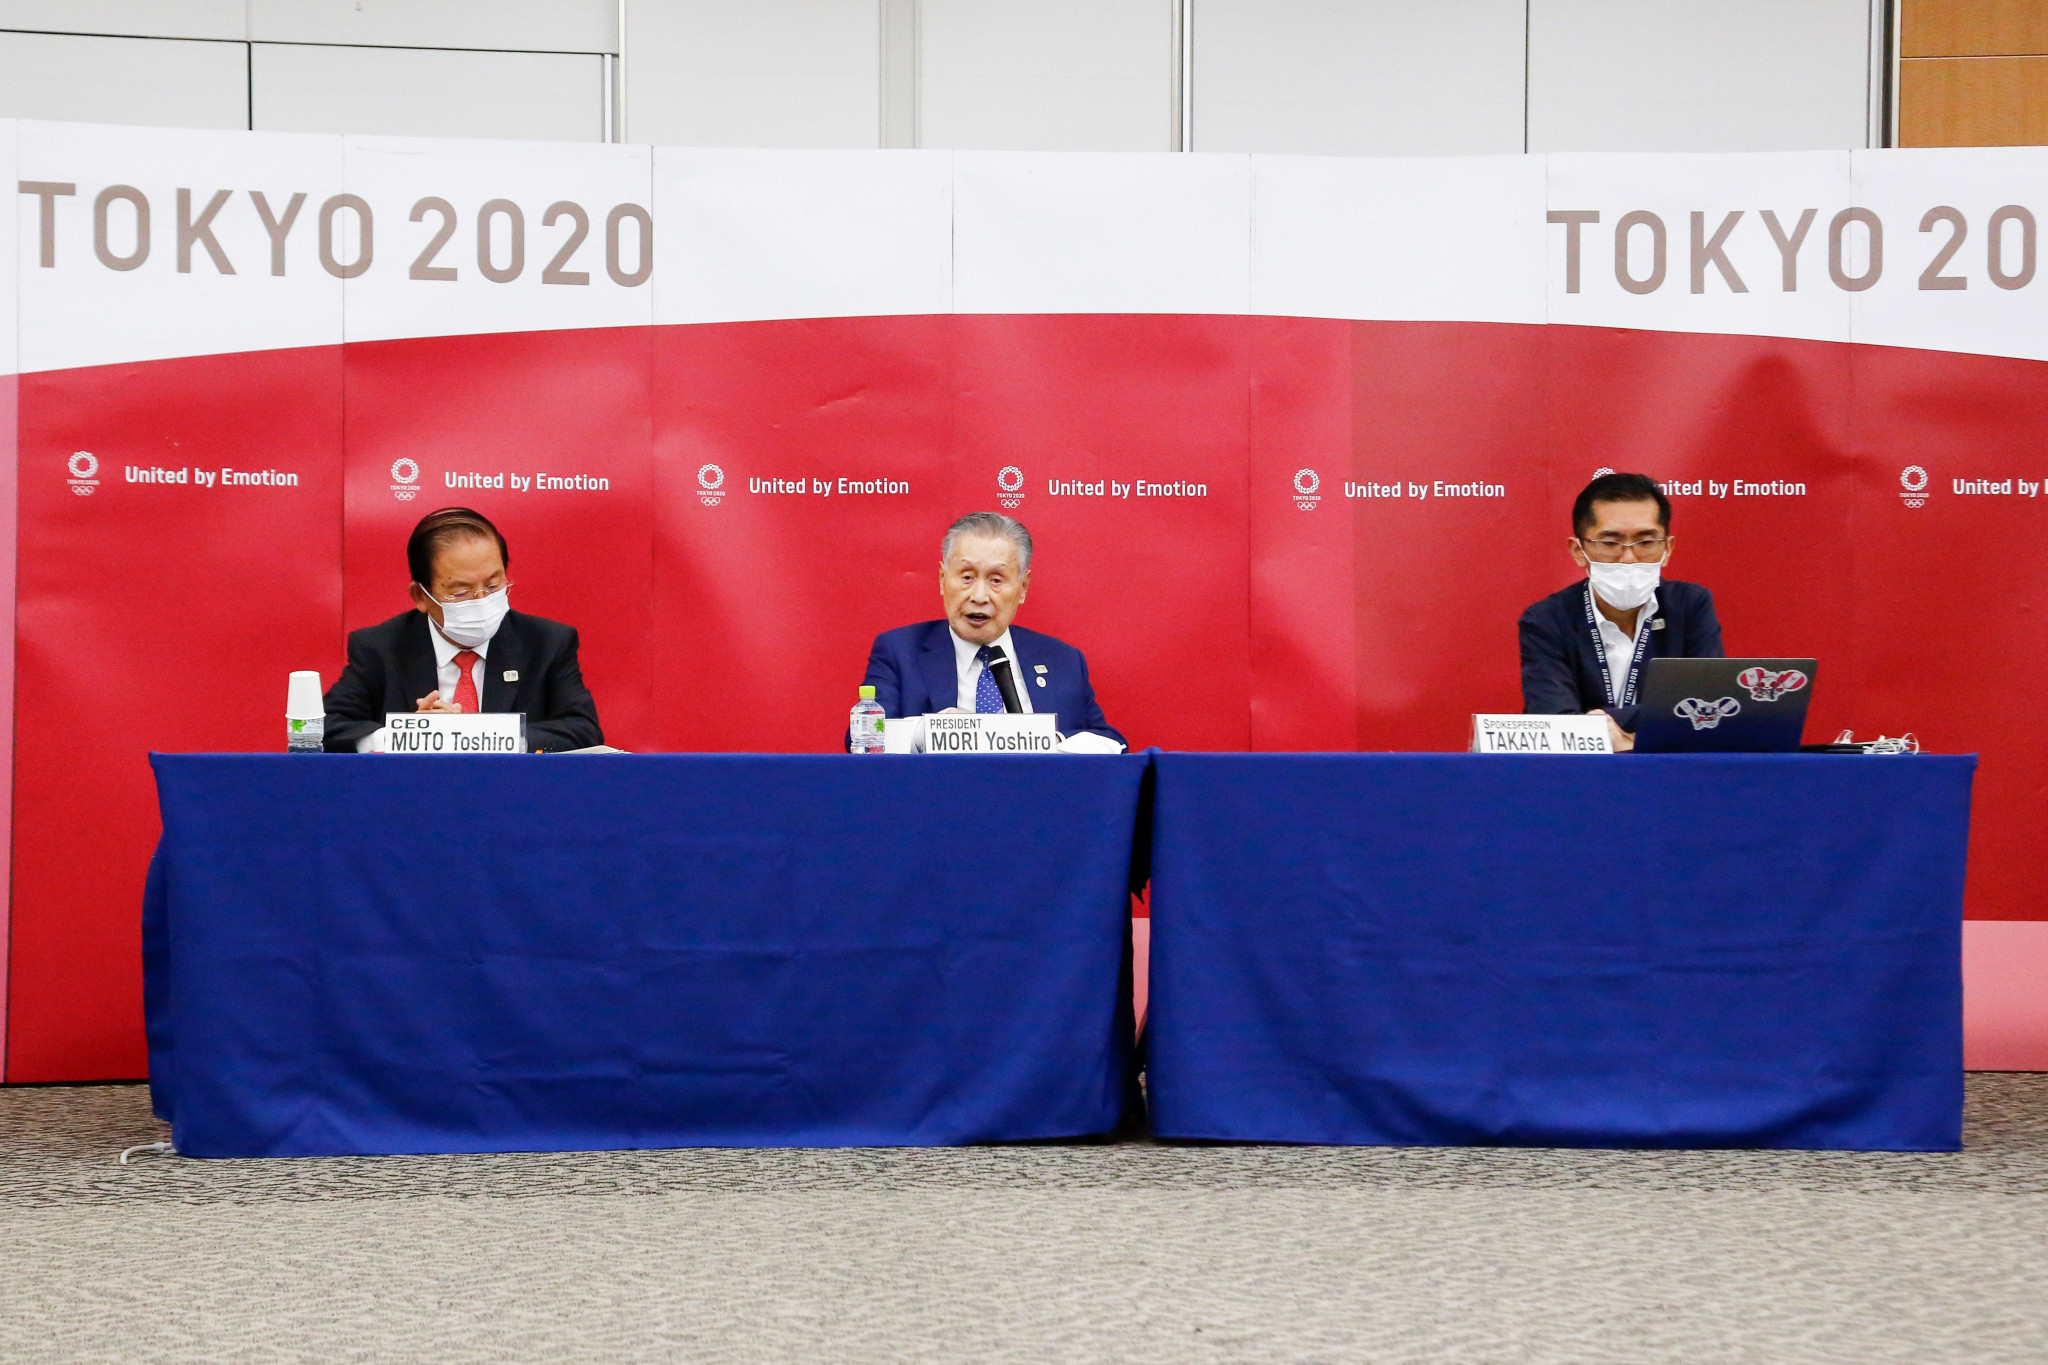 Tokyo 2020 have sought to make savings since the postponement of the Olympic Games ©Getty Images